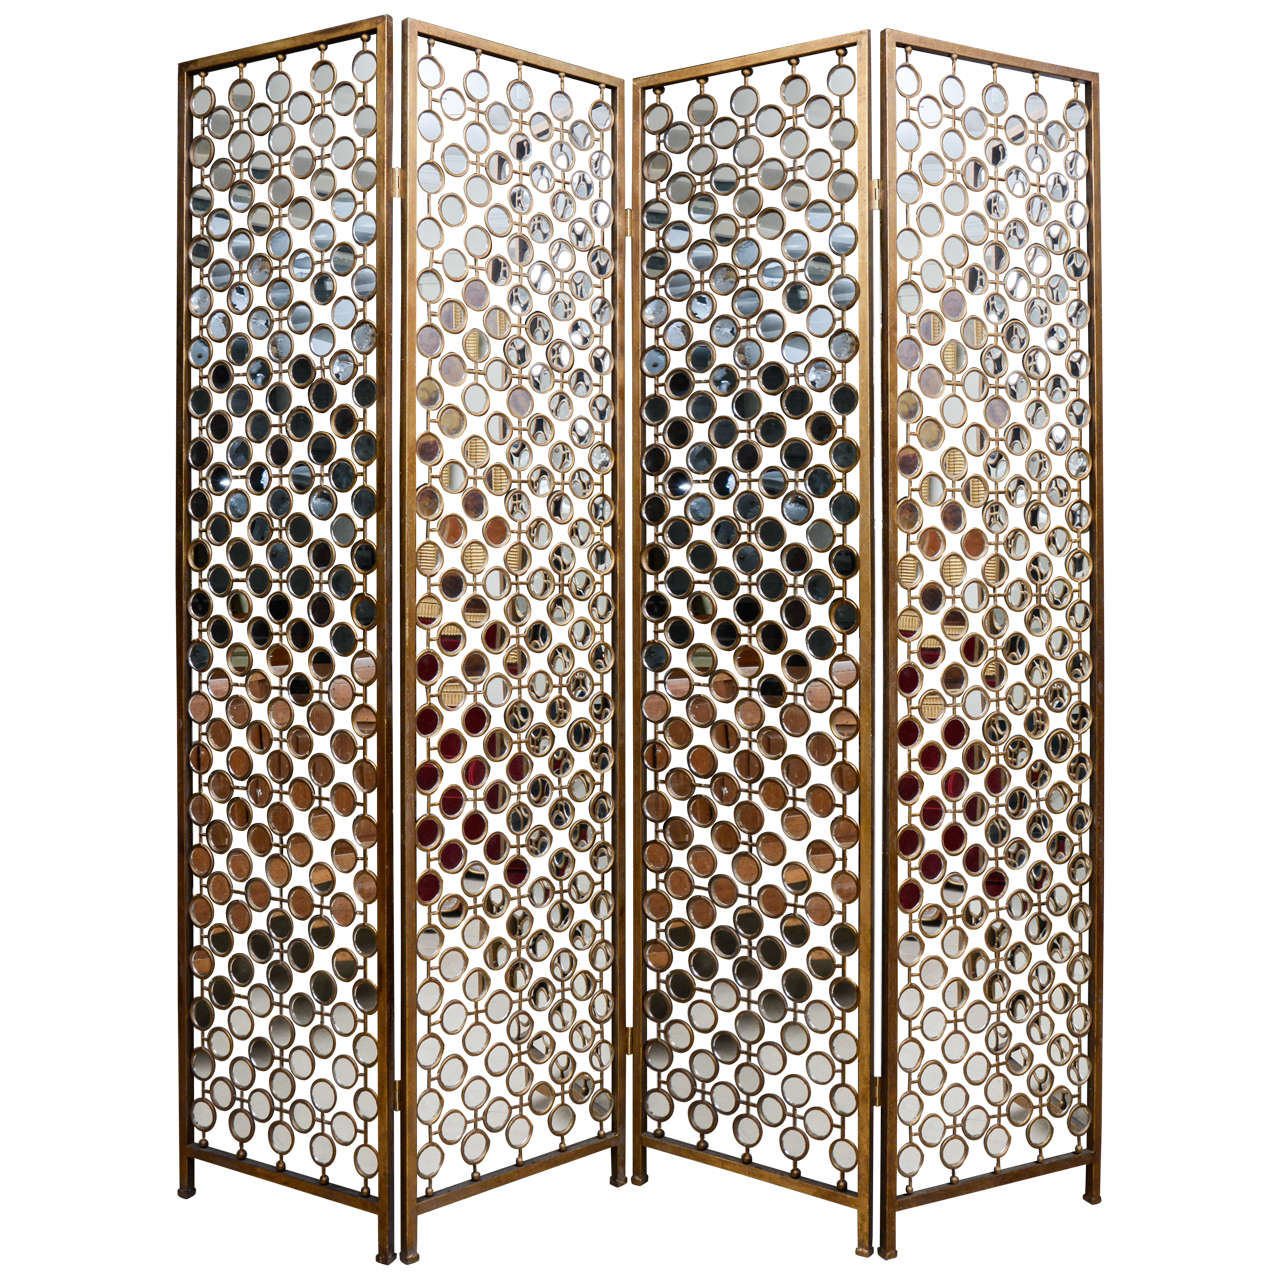 mirrored and metal divider screen at stdibs - mirrored and metal divider screen